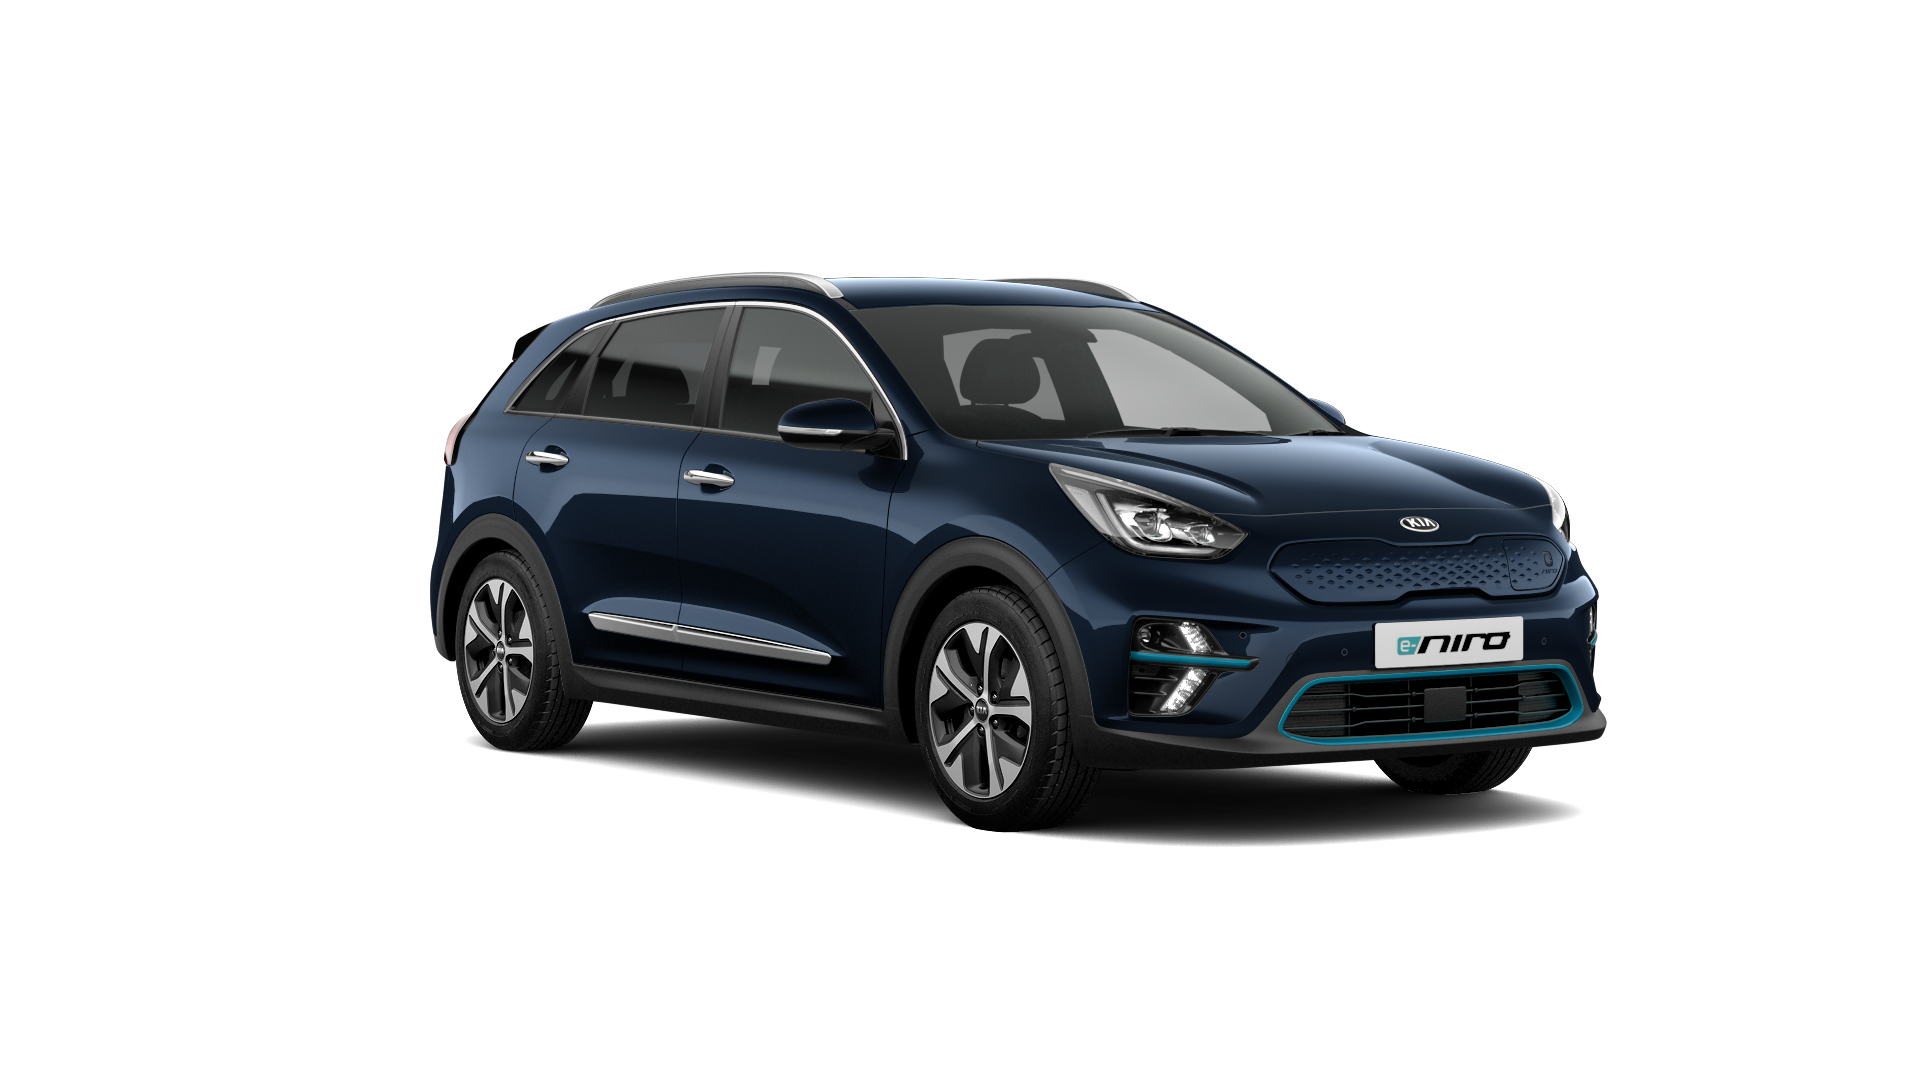 Kia New Kia E-Niro Gravity Blue